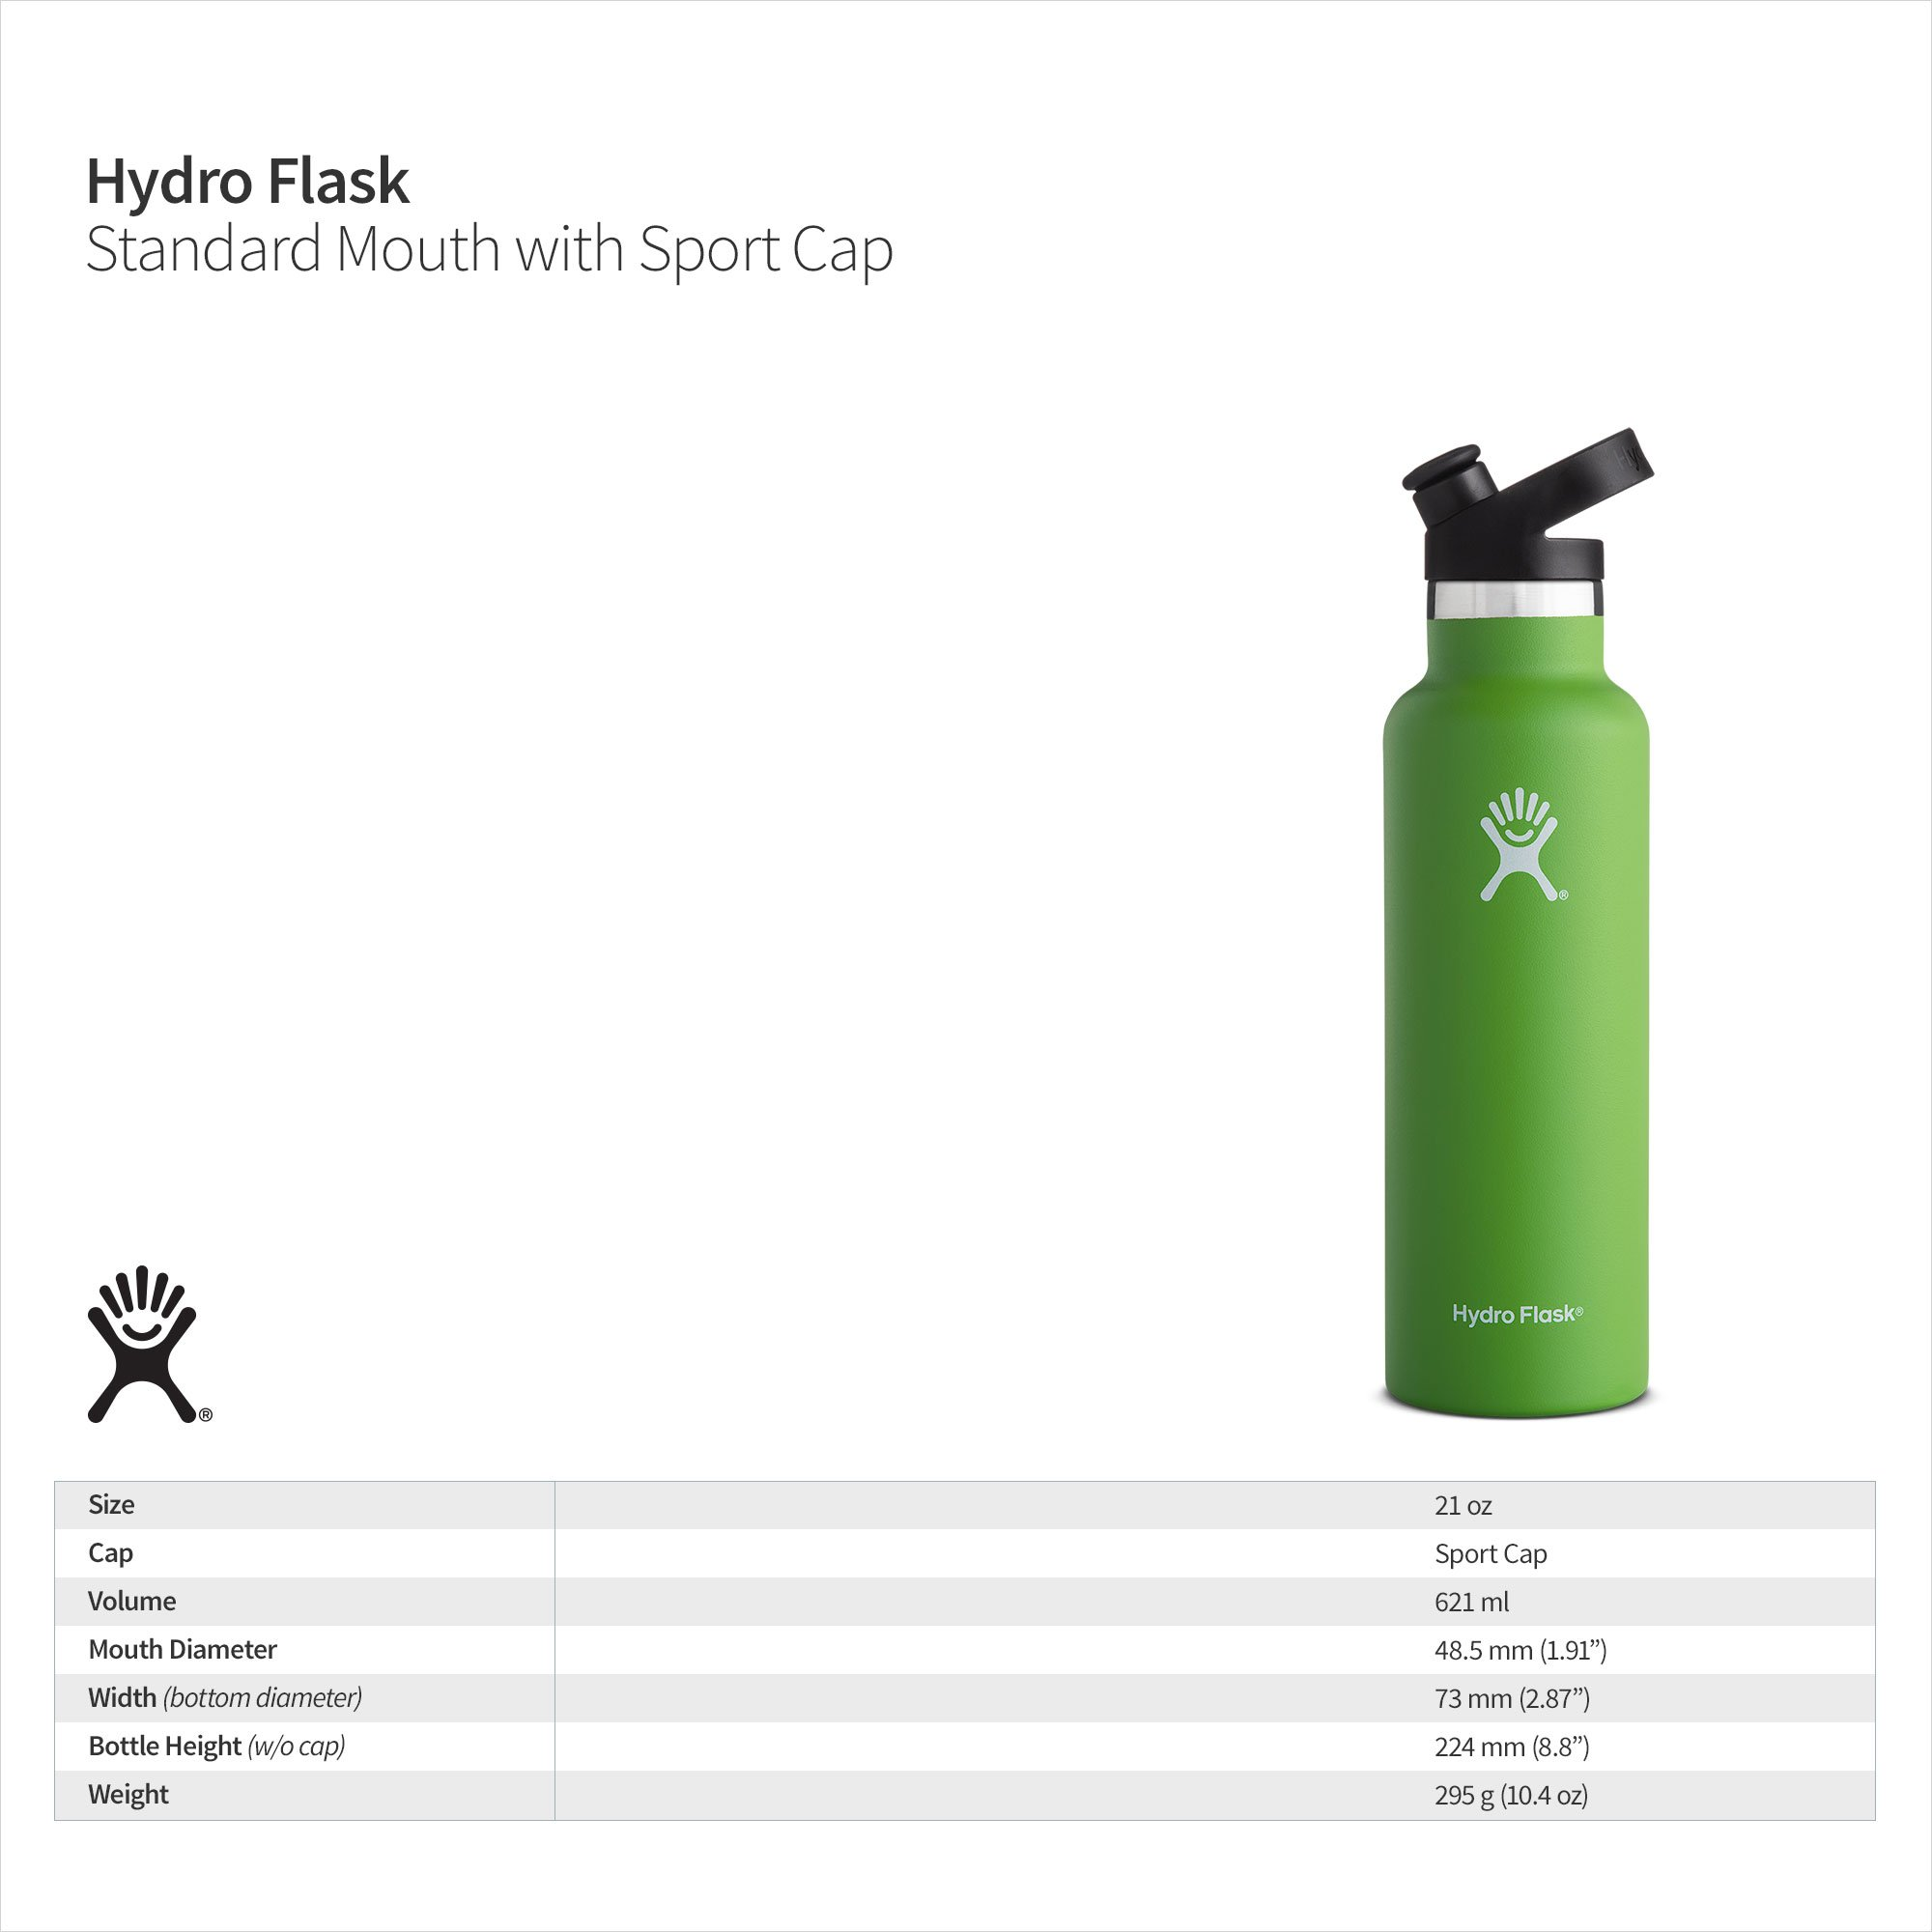 Hydro Flask 21 oz Double Wall Vacuum Insulated Stainless Steel Sports Water Bottle, Standard Mouth with BPA Free Sport Cap, Mint by Hydro Flask (Image #4)